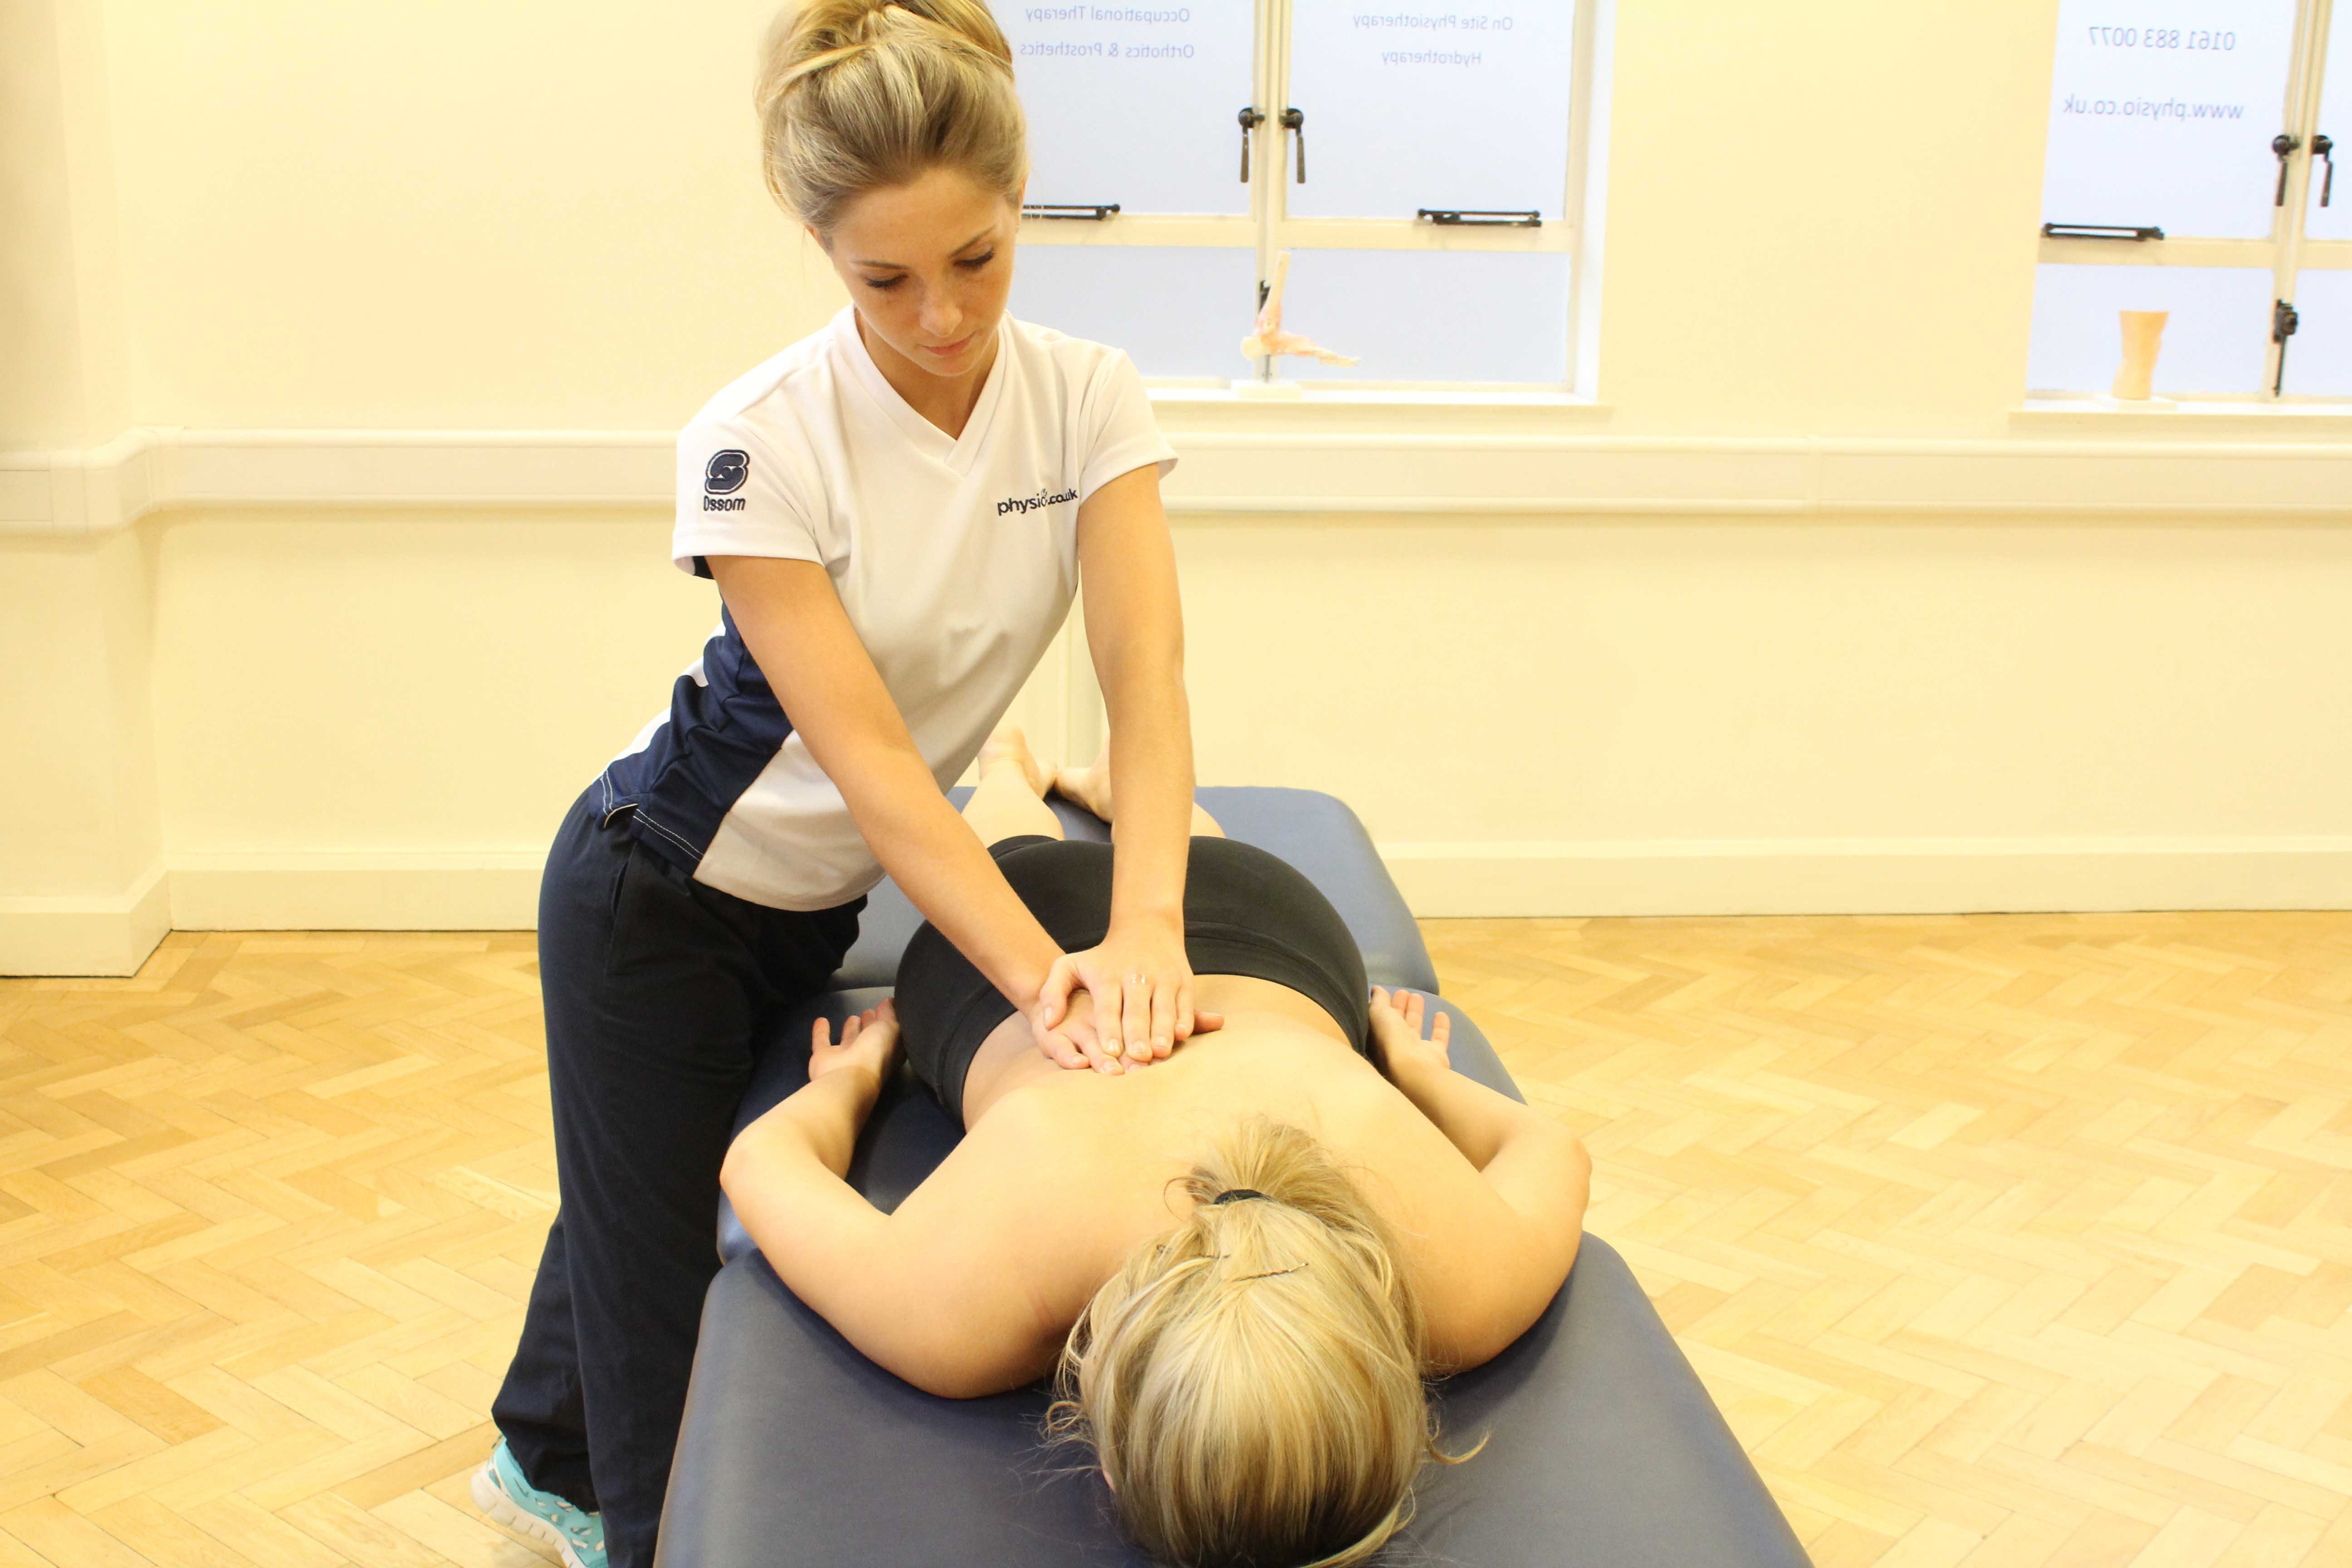 Therapeutic massage focusing on laissimus and rhomboid muscles